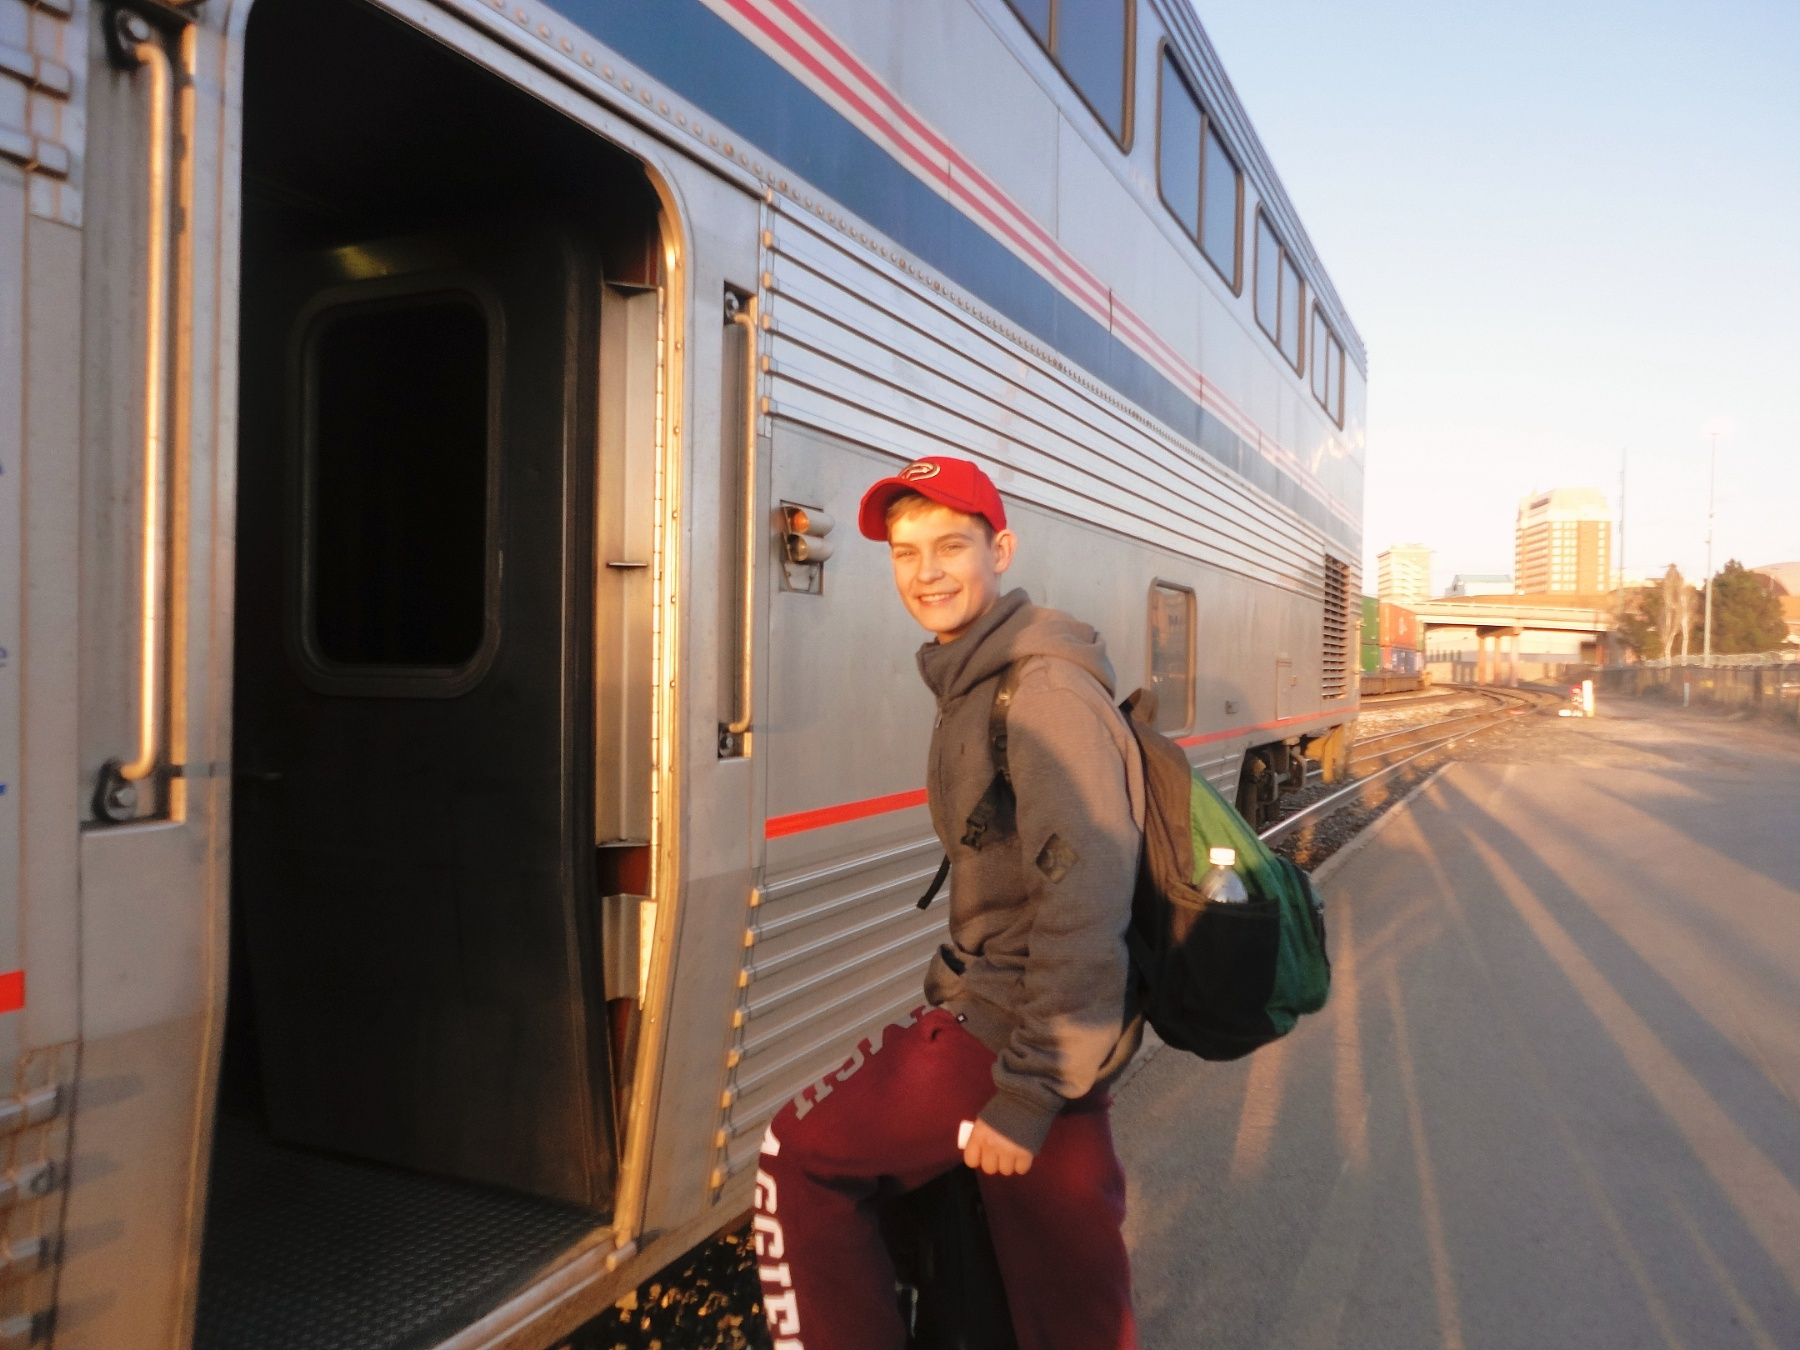 An Amtrak Train Trip Vacation Viewed By My Teenager